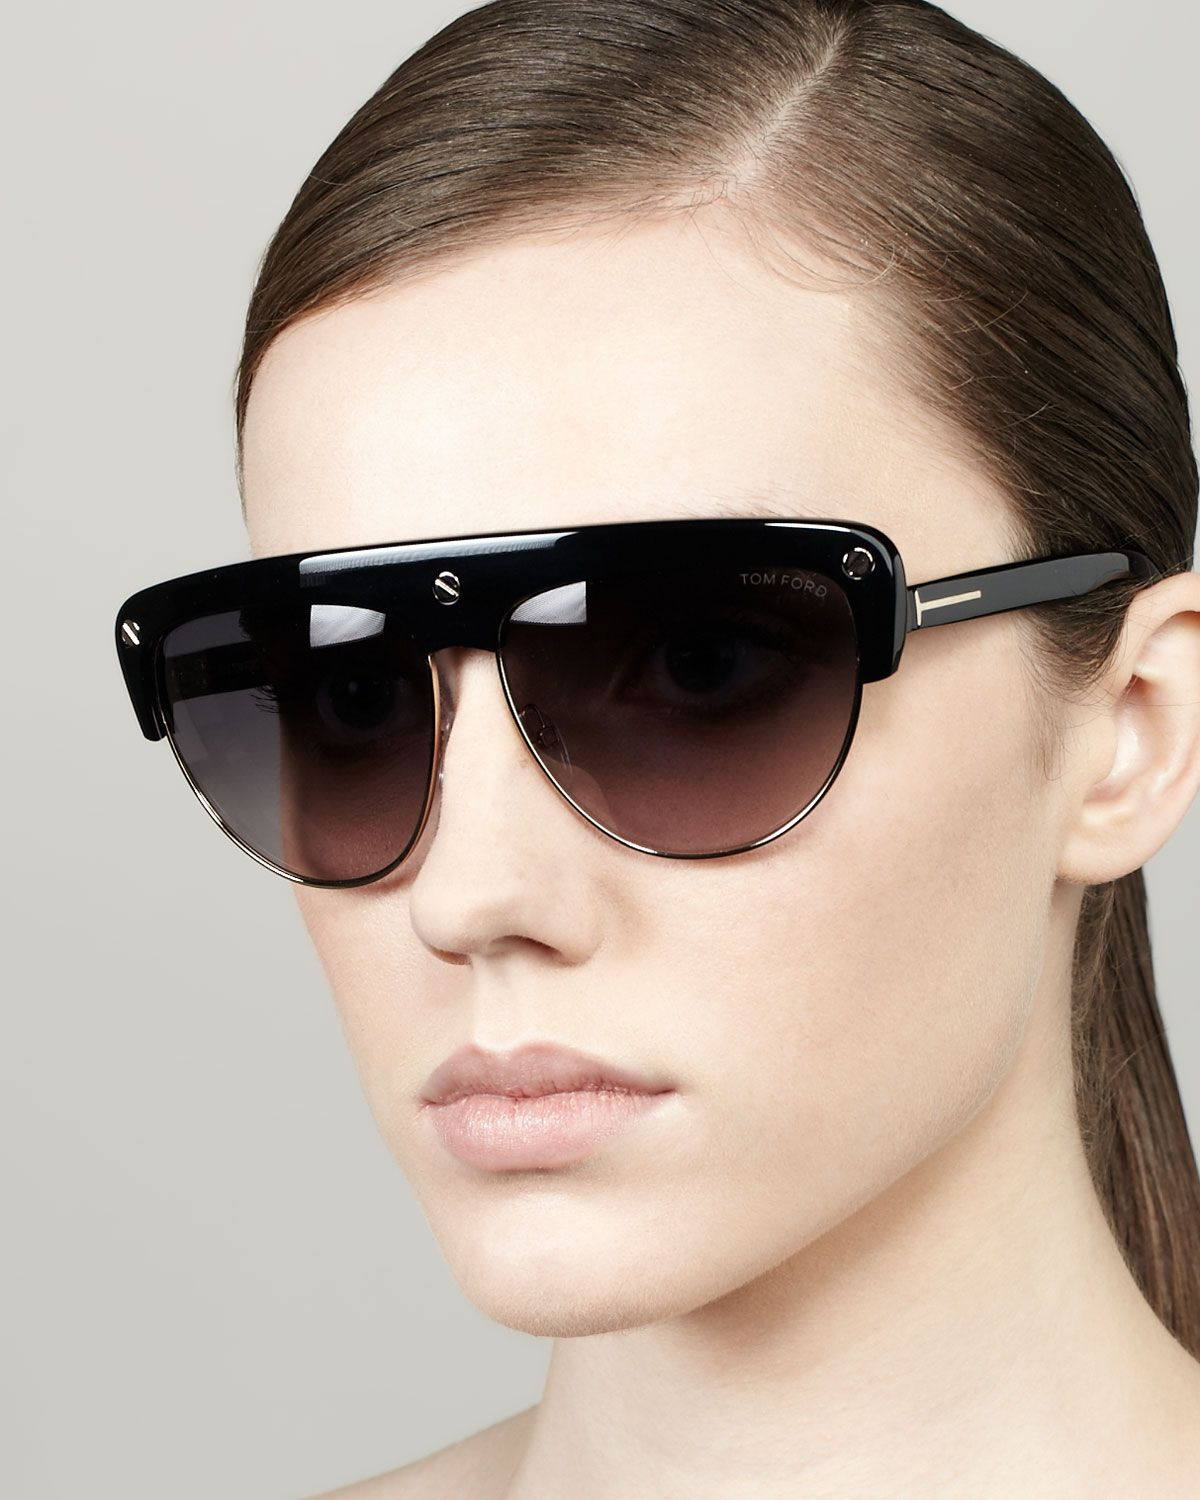 17a76f8b97 Tom Ford Liane black sunglasses | Image Inspiration | Sunglasses ...